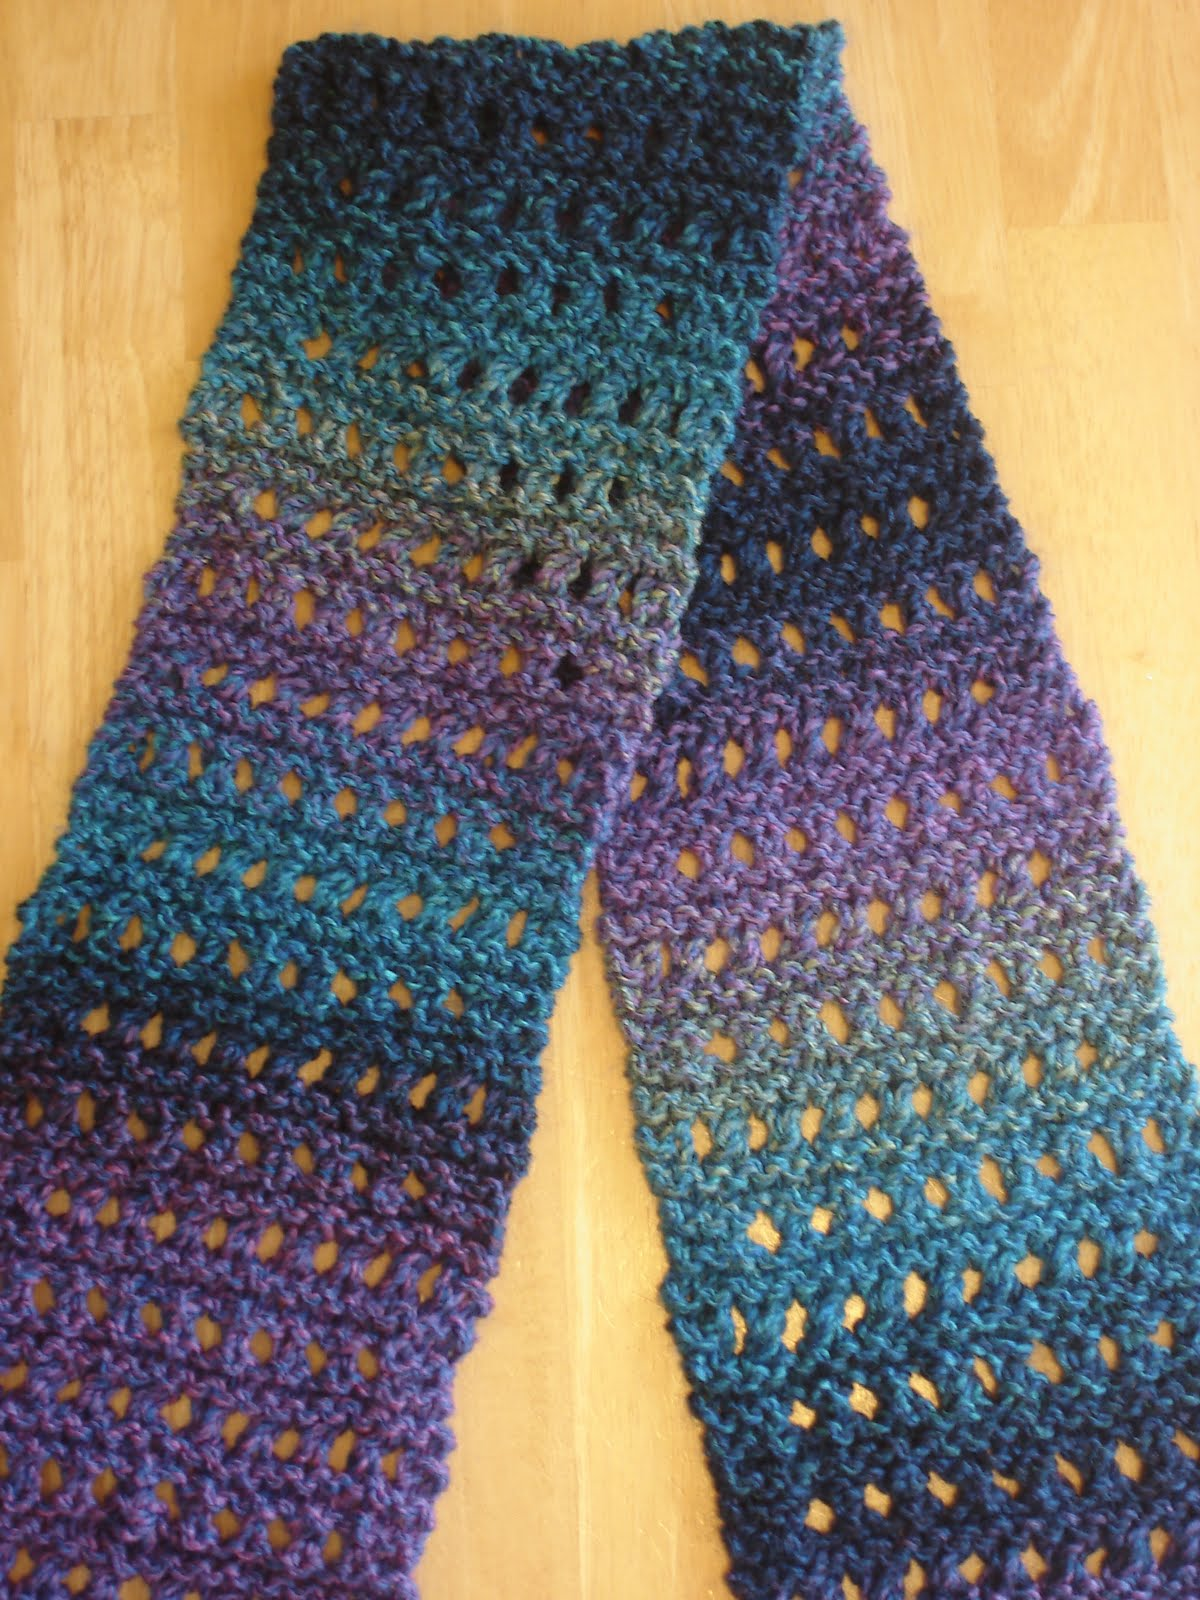 Knitting Pattern Free Scarf : Fiber Flux: Free Knitting Pattern: Tweedy Eyelet Scarf!